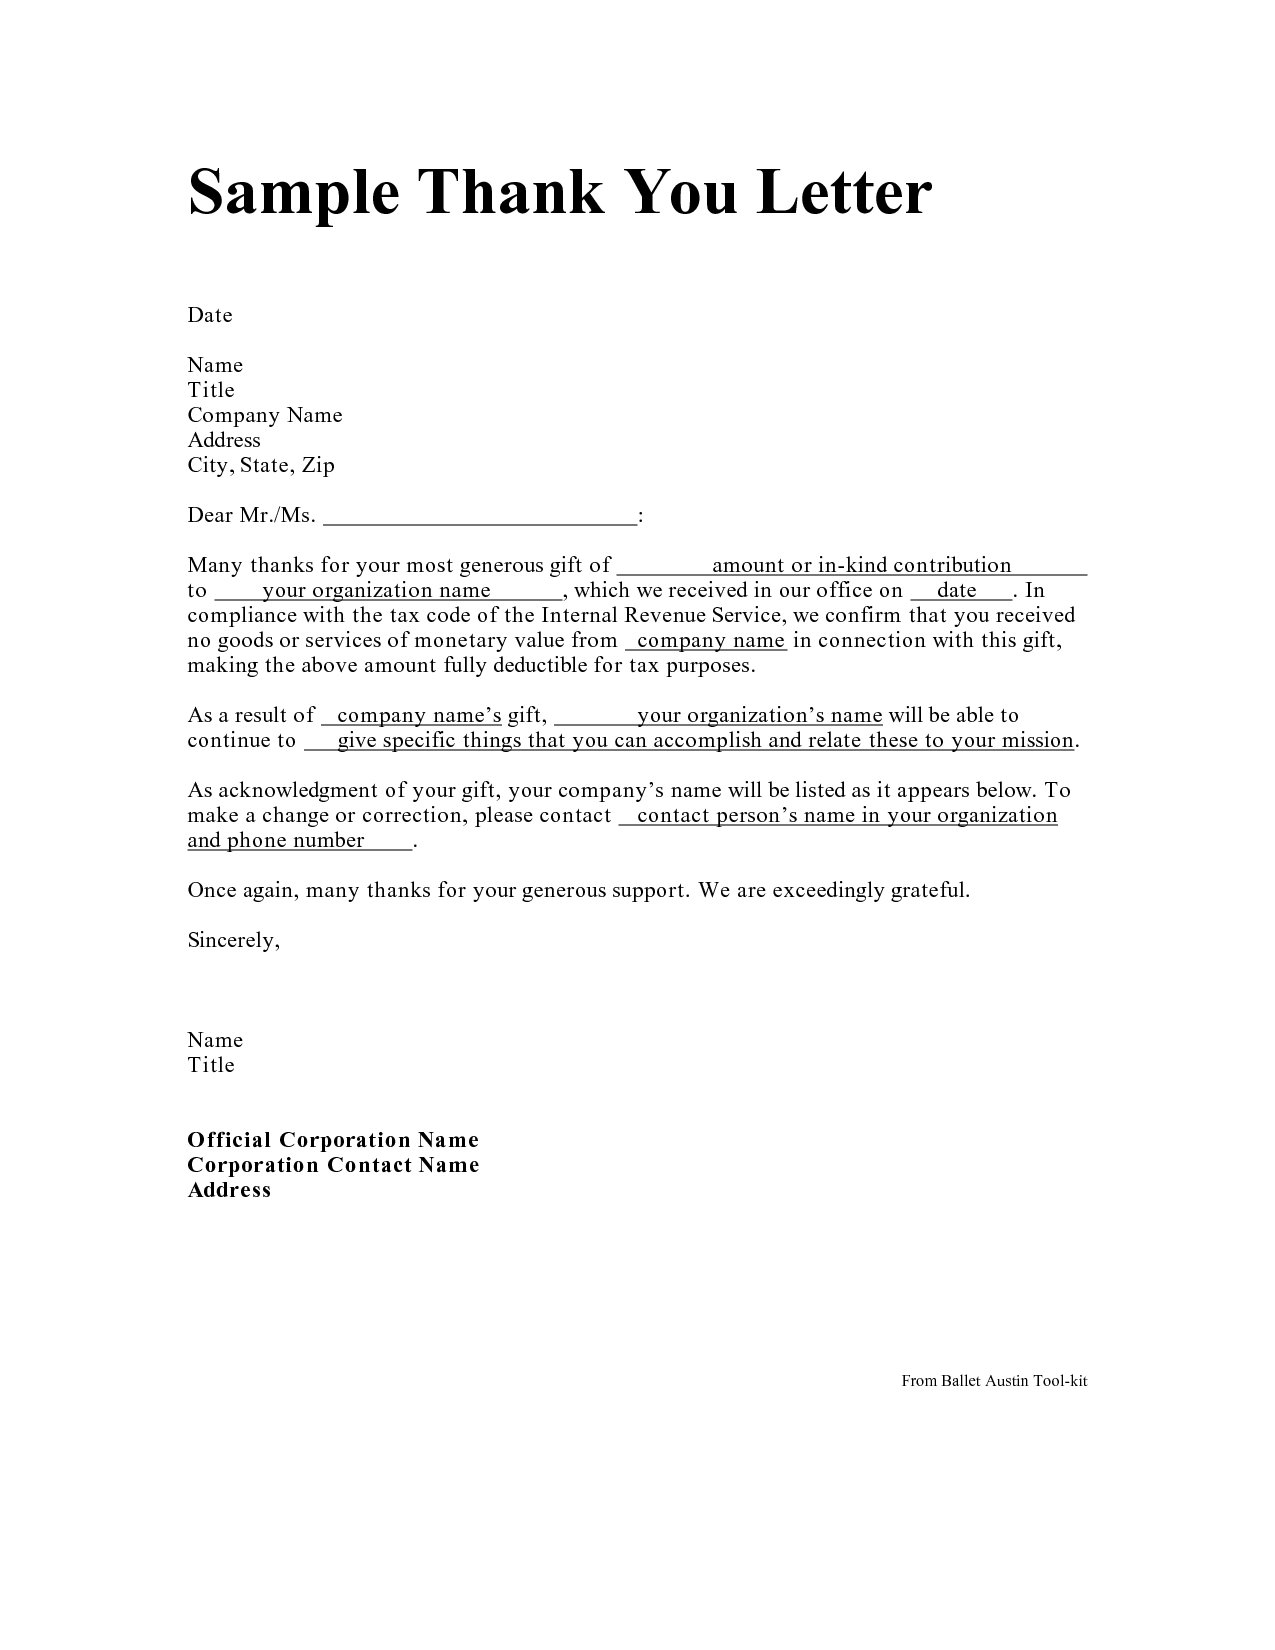 example thank you letter